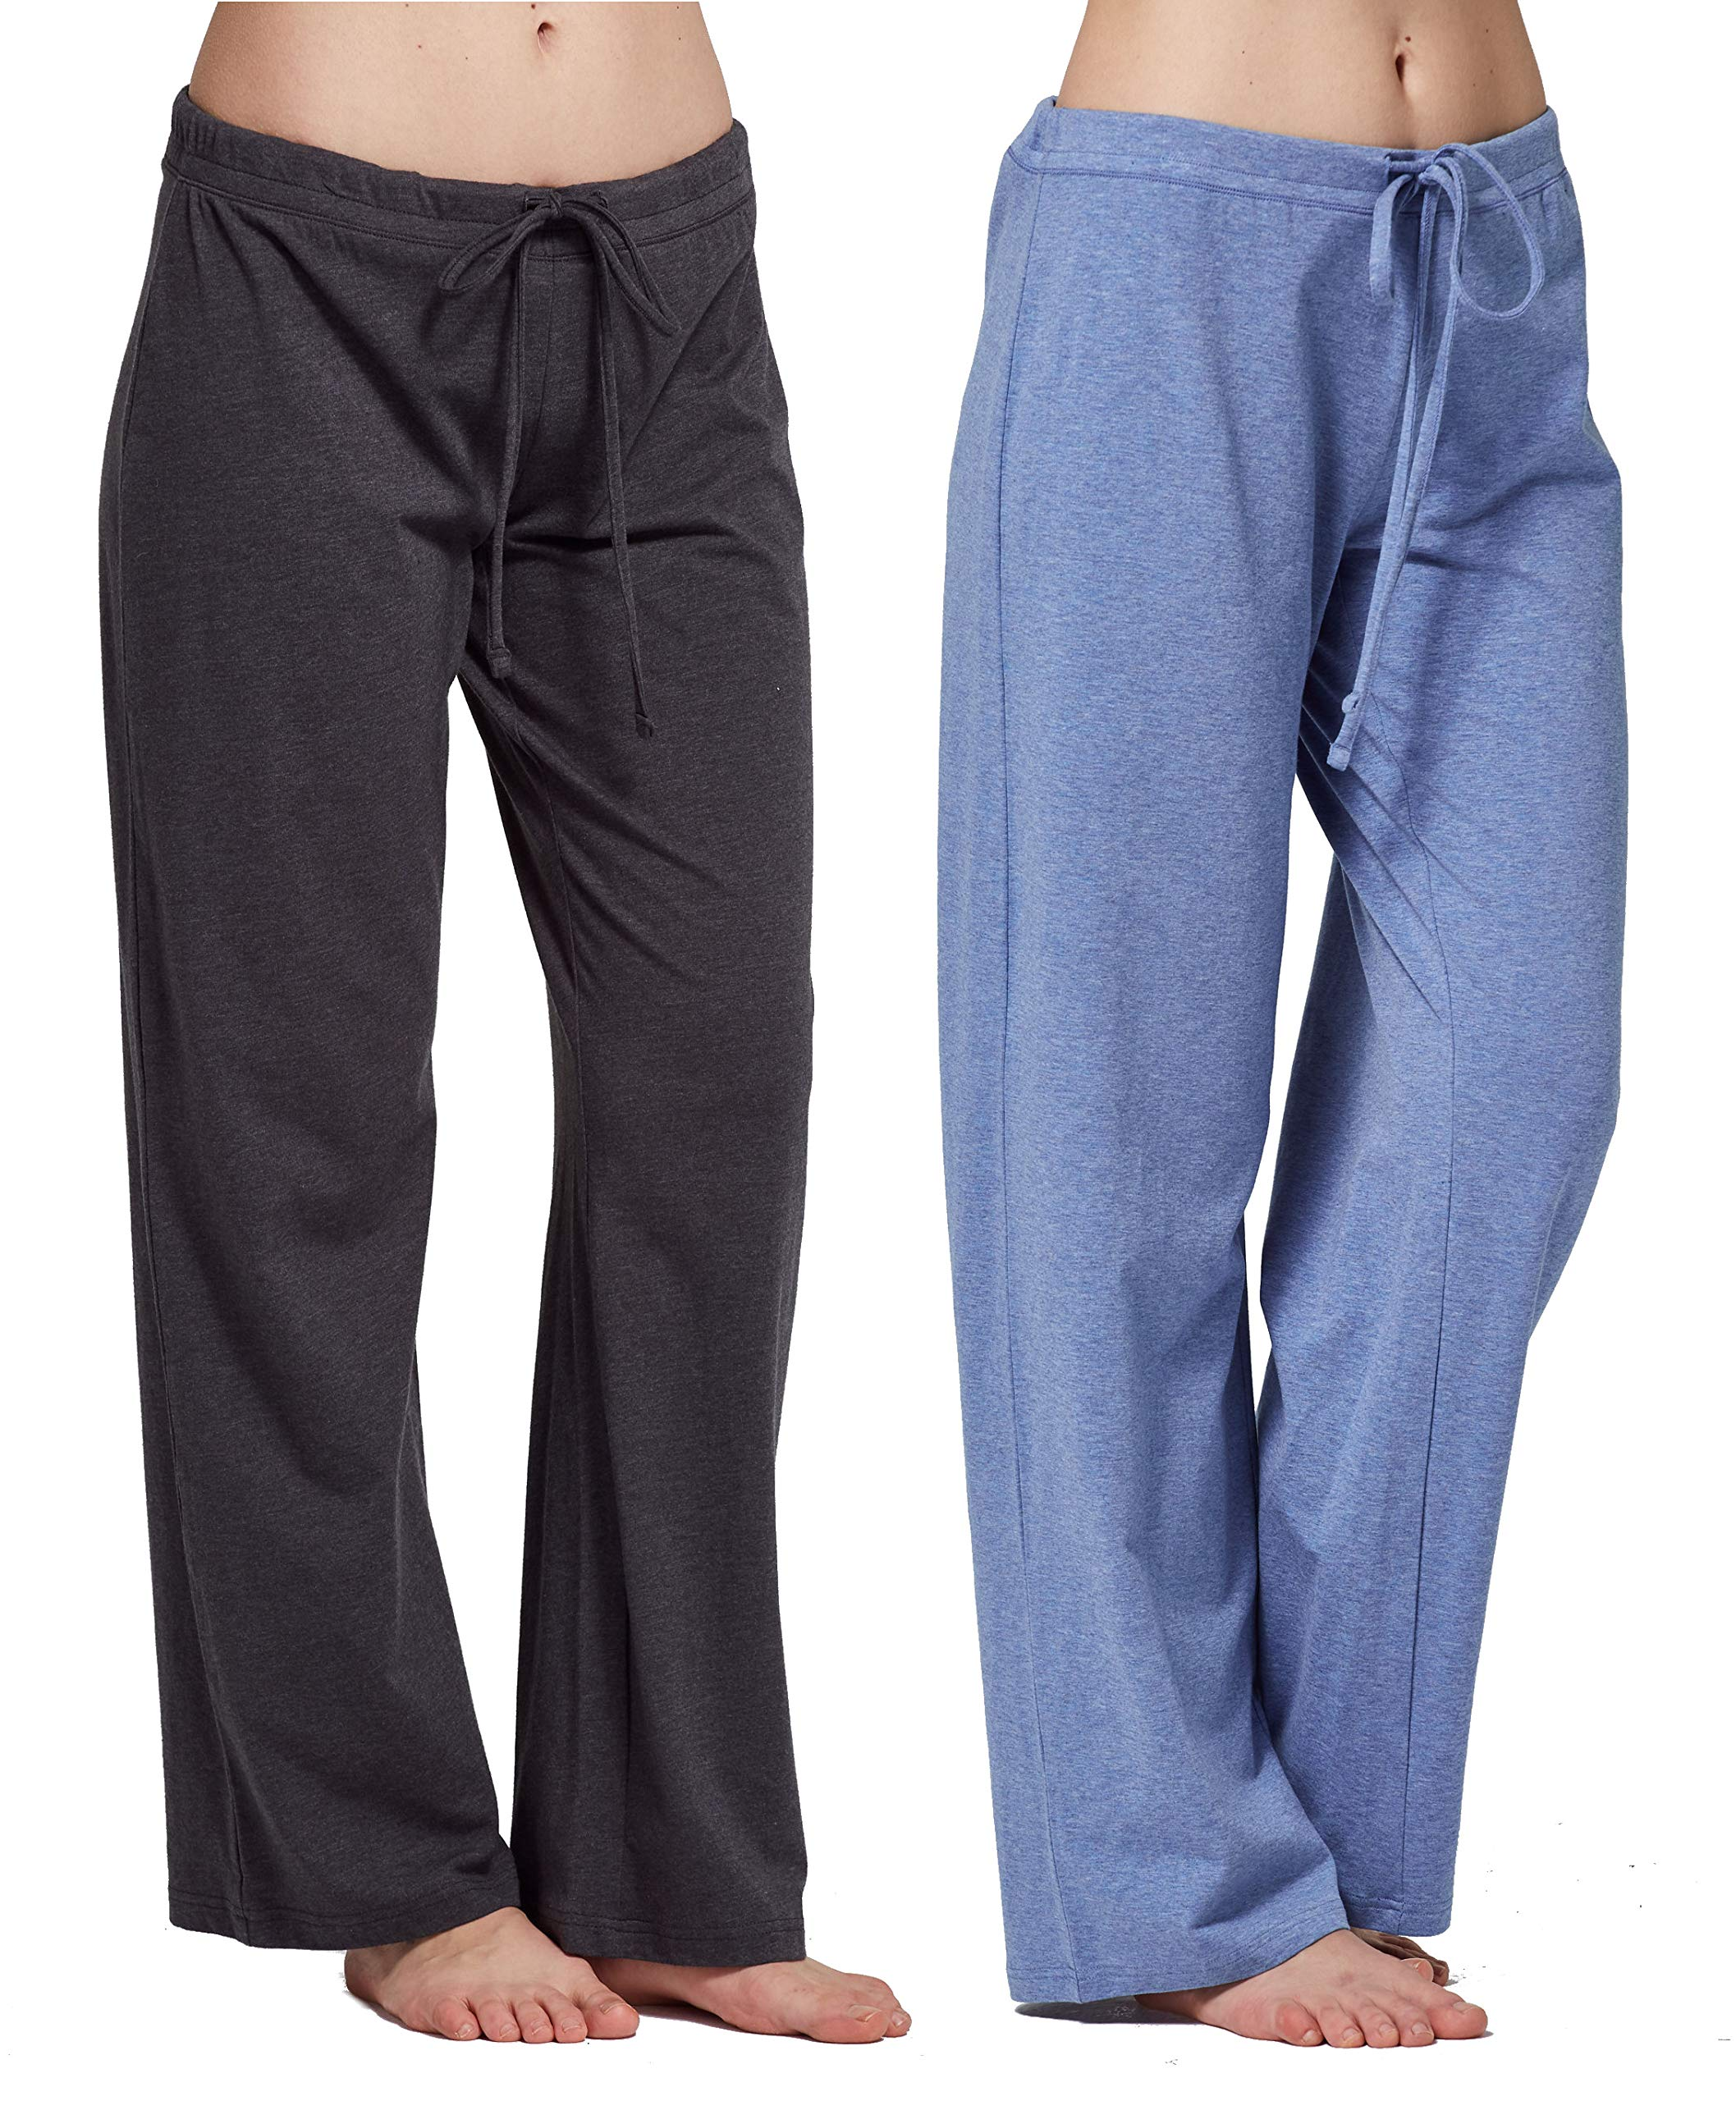 CYZ Women's Casual Stretch Cotton Pajama Pants Simple Lounge Pants-CharcoalBlueMelange2PK-XL